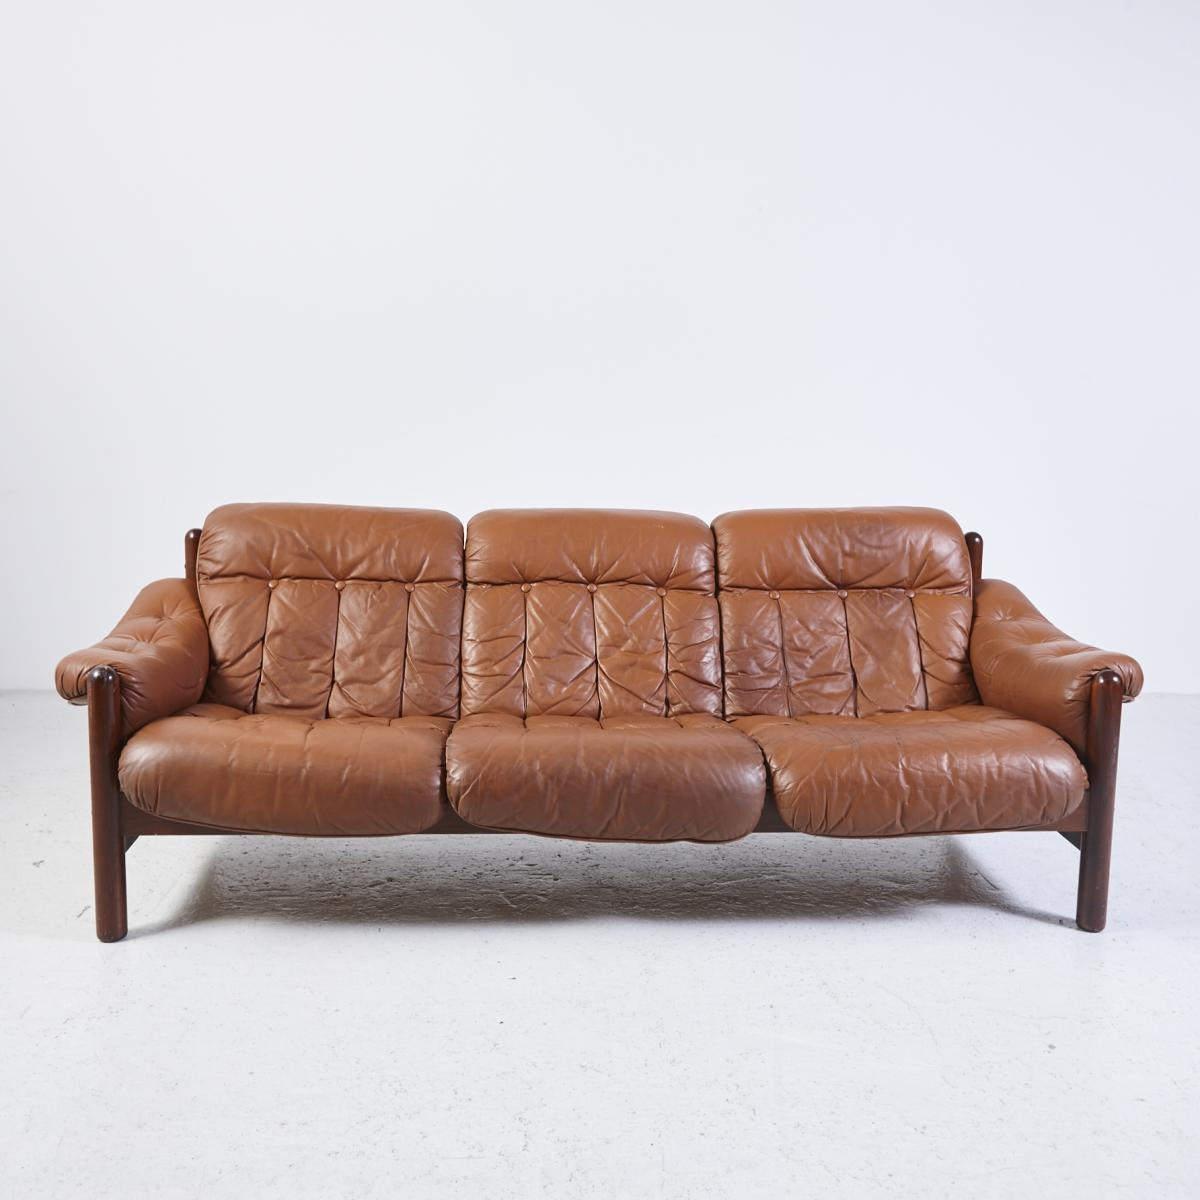 Vintage 3 Seater Leather Sofa With Teak Frame For Sale At Pamono With Regard To 3 Seater Leather Sofas (View 14 of 20)